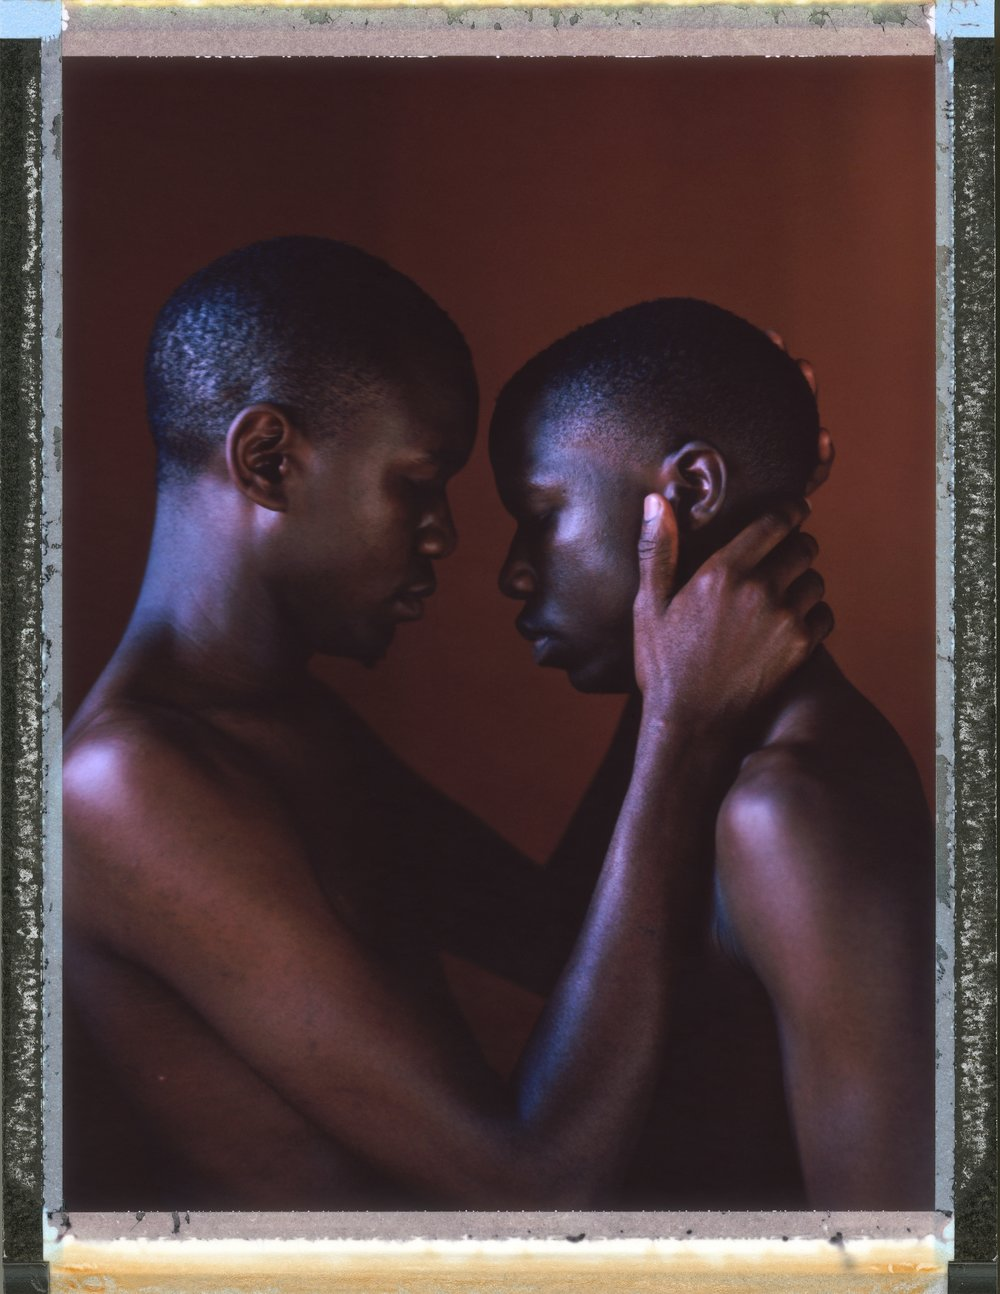 "A posed portrait of 25 year old Miiro (left) and 21 year old Imran (right, not his real name), a gay couple living together in Uganda. Miiro, describes their eviction from their home because, he says, they are gay: ""We heard people stoning the door and windows while shouting, telling us to immediately leave the house because they were tired of us, claiming that we are curse to the village, and even to the teenagers in the village… After a while of storming the door, it broke and we were pulled out, thrown on the ground, beaten and flogged for almost an hour. We were half dead. And they burnt all things in the house in the process. The leader of the village intervened and they decided to take us to the police station for life imprisonment."" Miiro spent four days in police cells before being released by human rights lawyers. He went into hiding for two and a half months. He received $160 relocation money from a non-governmental organization but he says it wasn't enough to start a new life. Even before their eviction though, life as gay men in Uganda was not easy. has faced constant persecution because of his sexuality. He describes being 'outed' at school, and the moment his mother found out: ""She didn't even have to listen to what am to say, she told me I was a disgrace and I wasn't worthy being her  son, she went ahead to disowning me there and then in front of the entire school and its staff and that I would rather be dead than having me alive as gay. She then walked away and left me on my knees begging for her at least listen to what I have to say, the head teacher then asked me to leave his school, I left school while being mocked , laughed at, on that day hated myself to the extreme I felt I wasn't worthy living, where was I to start from? How when the only person I trusted in the world turned her back on me? And this was the beginning of my suffering."" Uganda, September 2014.  While many countries around the world are legally recognizing same-sex relationships, individuals in nearly 80 countries face criminal sanctions for private consensual relations with another adult of the same sex. Violence and discrimination based on sexual orientation or gender expression is even more widespread. Africa is becoming the worst continent for Lesbian, Gay, Bi-sexual, Transgender, Queer, Inter-sex (LGBTQI) individuals. More than two thirds of African countries have laws criminalizing consensual same-sex acts. In some, homosexuality is punishable by death. In Nigeria new homophobic laws introduced in 2013 led to dramatic increase in attacks. Under Sharia Law, homosexuality is punishable by death, up to 50 lashes and six months in prison for woman; for men elsewhere, up to 14 years in prison. Same sex acts are illegal in Uganda. A discriminatory law was passed then struck down and homophobic attacks rose tenfold after the passage of the Anti-Homosexuality Act. In Cameroon it is also illegal. More cases against suspected homosexuals are brought here than any other African country. In stark contrast with the rest of the continent, same sex relationships are legal in South Africa. The country has the most liberal laws toward gays and lesbians on the continent, with a constitution guaranteeing LBGTQI rights. Because of this, LGBTQI Africans from all over the continent fleeing persecution have come to South Africa. Despite these laws, many lesbians have been victims of 'corrective rape' and homosexuals have been murdered for their sexuality. Homophobia is by no means just an African problem. In Russia, politicians spread intolerance. In June 2013 the country passed a law making ""propaganda"" about ""non-traditional sexual relationships"" a crime. Attacks against gays rose. Videos of gay men being tortured have been posted online. In predominantly Muslim Malaysia, law currently provides for whipping and up to a 20-year prison sentence for homosexual acts involving either men or women. Increased extreme Islamification in the Middle East is making life more dangerous for gay men there, as evidenced by ISIS's recent murders of homosexual men. While homophobic discrimination is widespread in Lebanon, life is much safer there than Iran, Iraq, and Syria from which refugees are fleeing due to homophobic persecution. Photo Robin Hammond/NOOR for Witness Change"